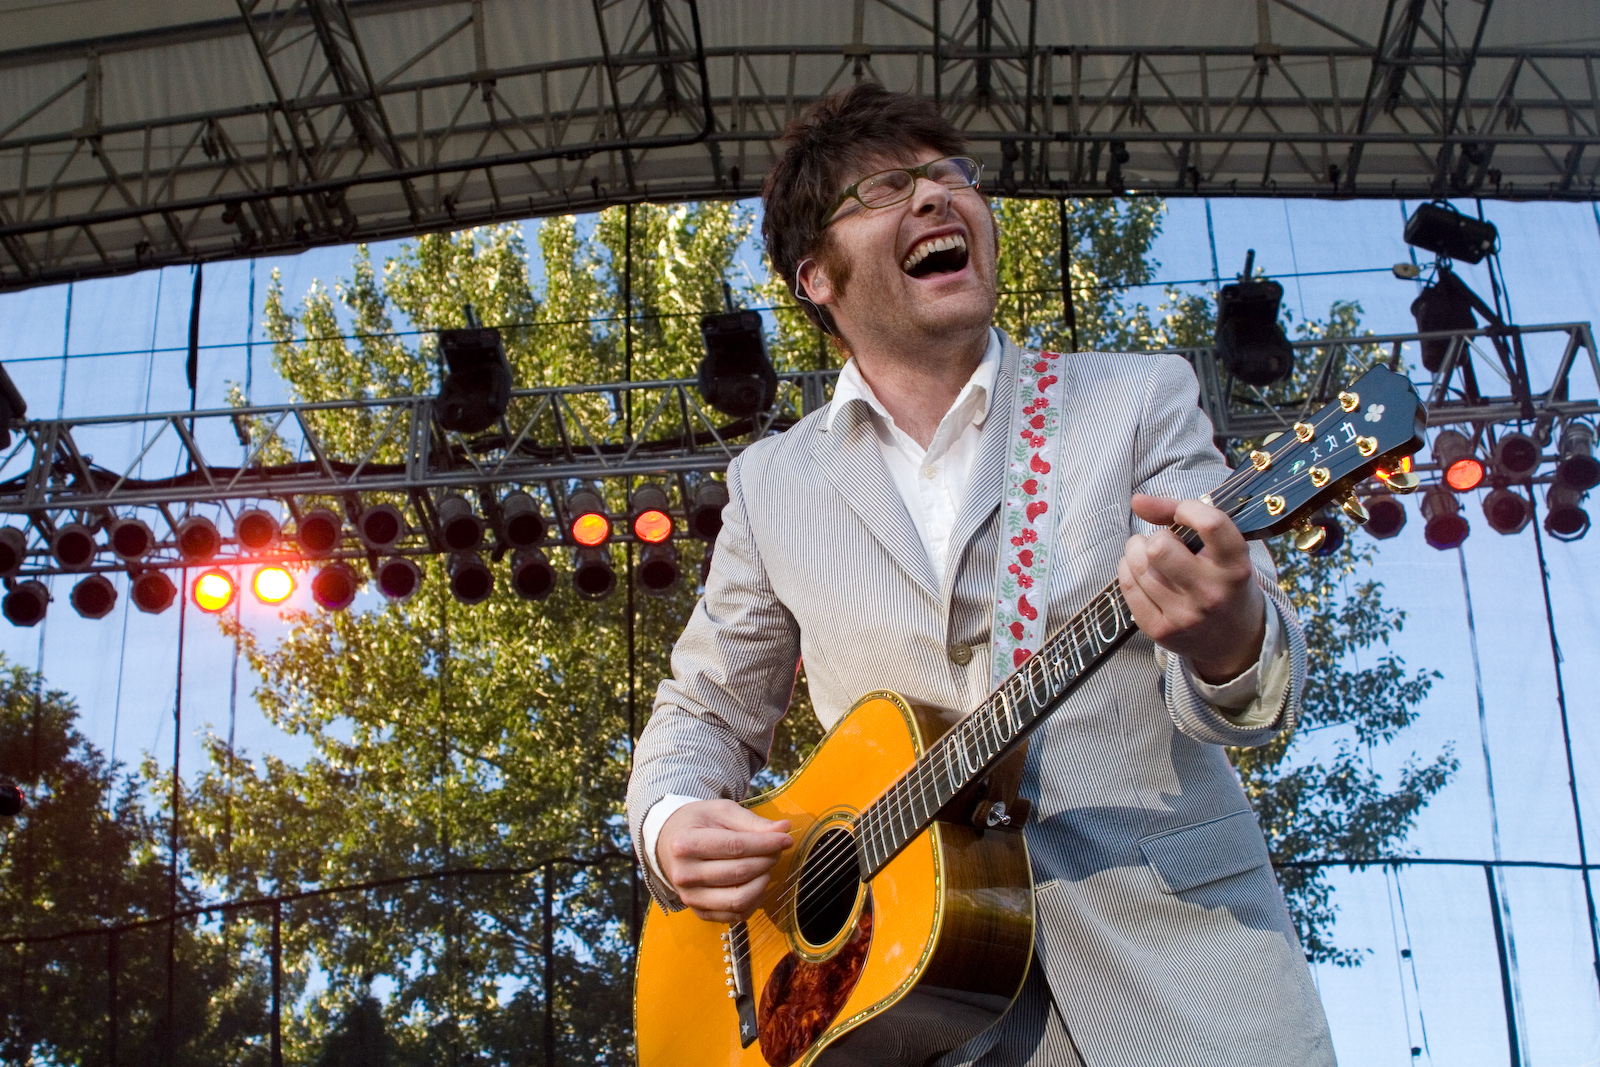 Colin Meloy of The Decemberists